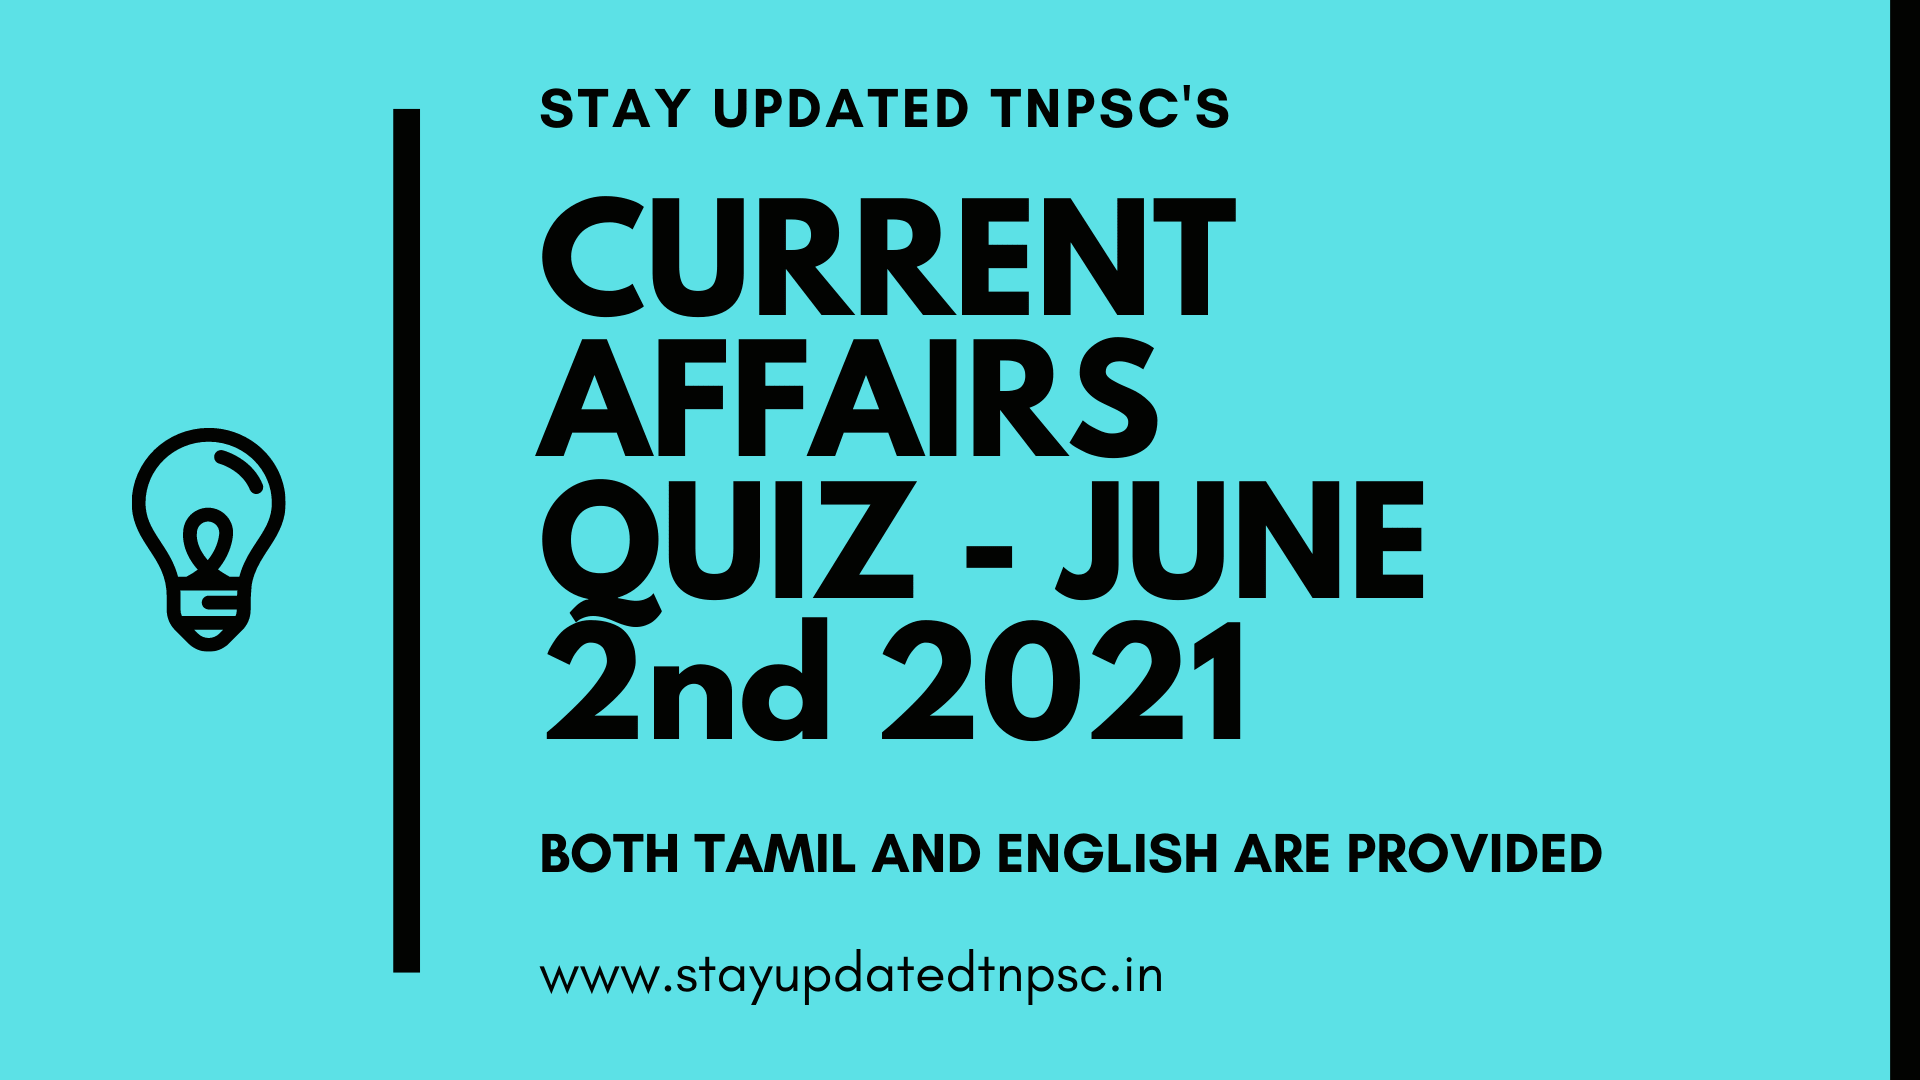 TNPSC DAILY CURRENT AFFAIRS: 02 JUNE 2021